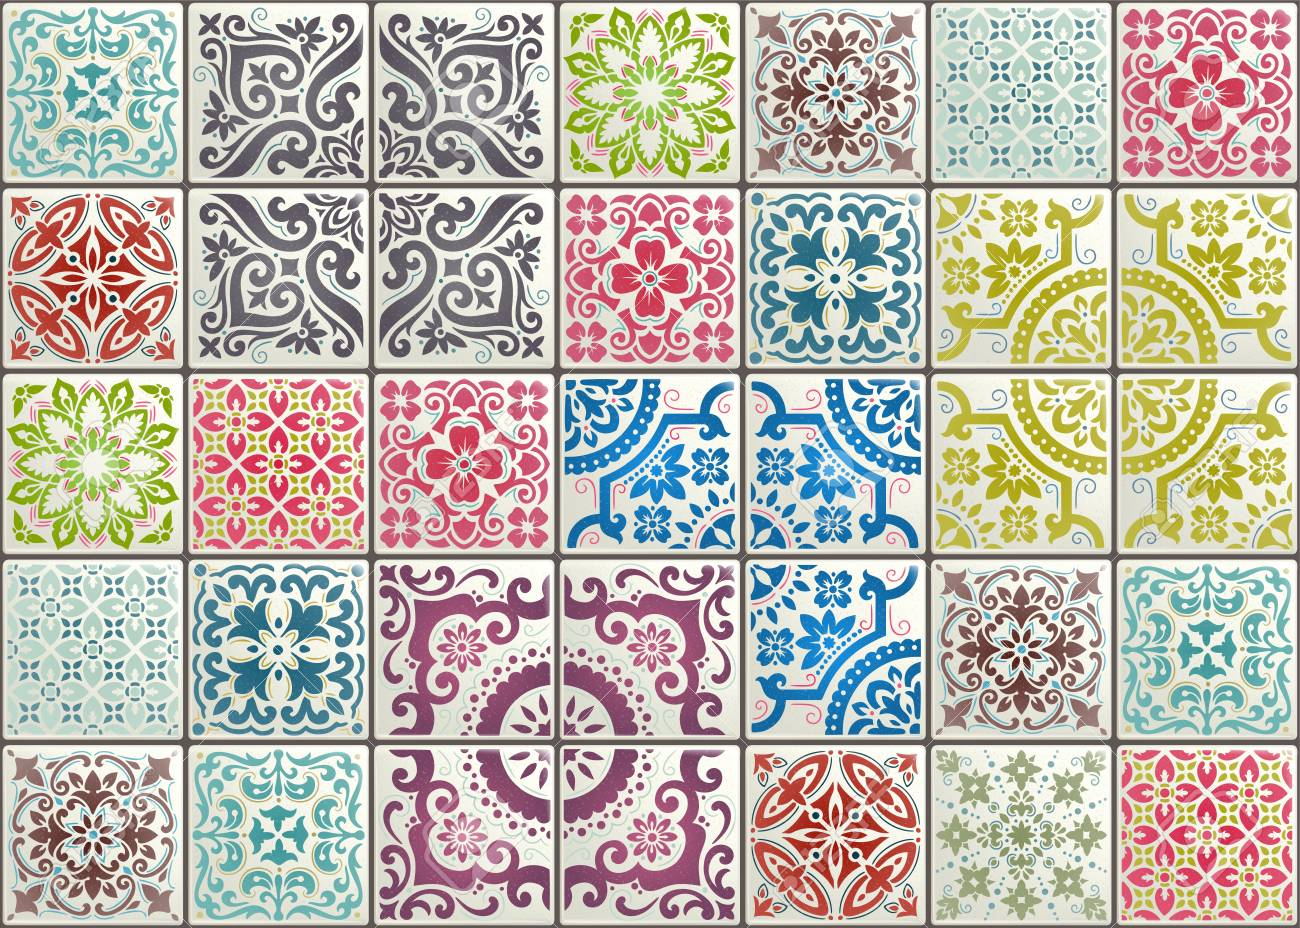 Seamless patchwork tile with Victorian motives. Majolica pottery tile, original traditional Portuguese and Spain decor. - 124789204